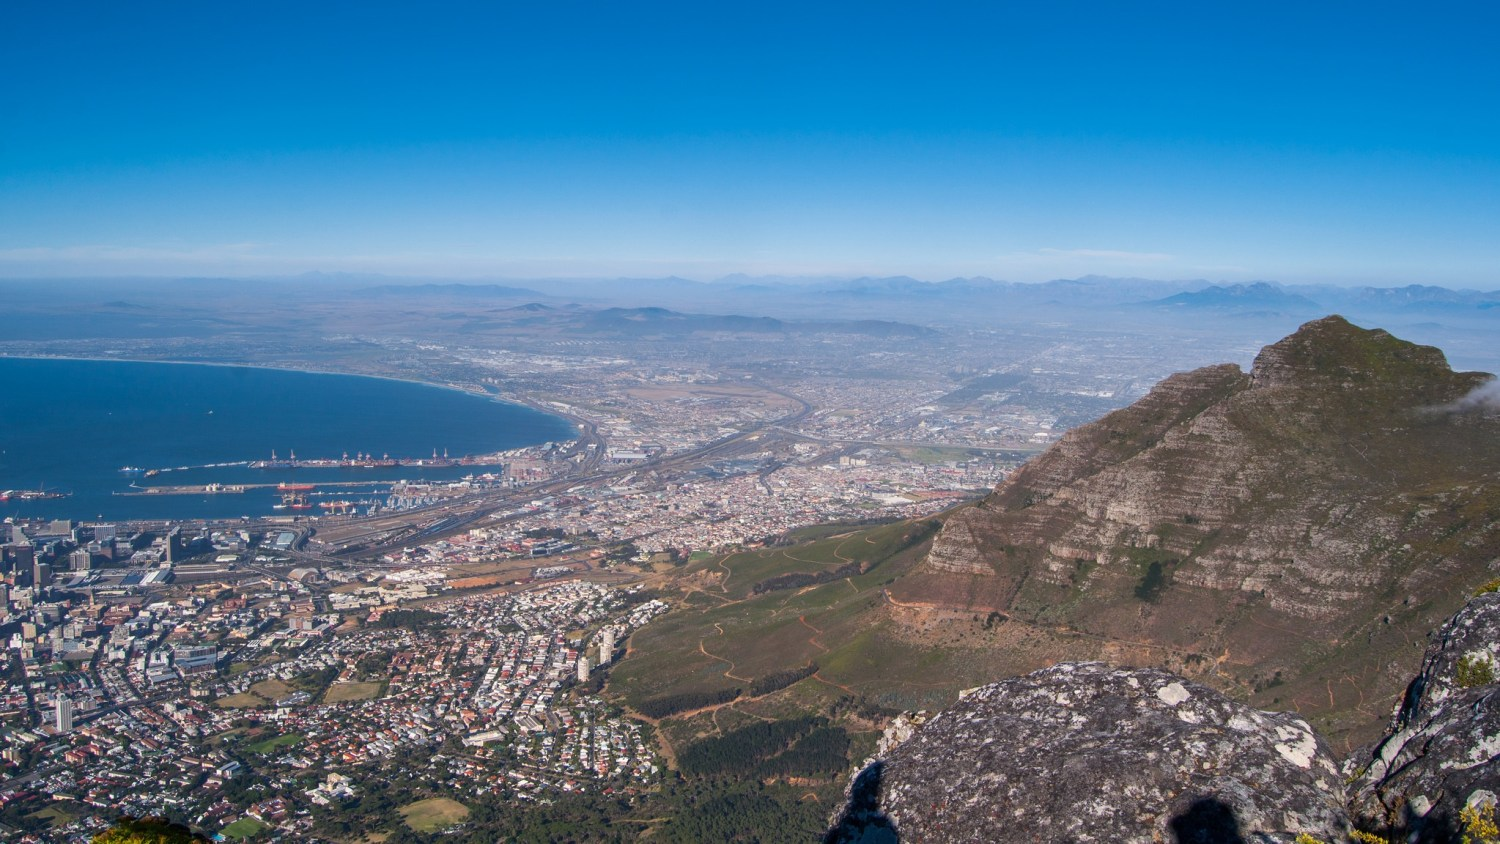 A city of 4 million people, Cape Town is banning outdoor water use in response to the worst drought in more than a century. Photo courtesy of Flickr/Creative Commons user merajchhaya